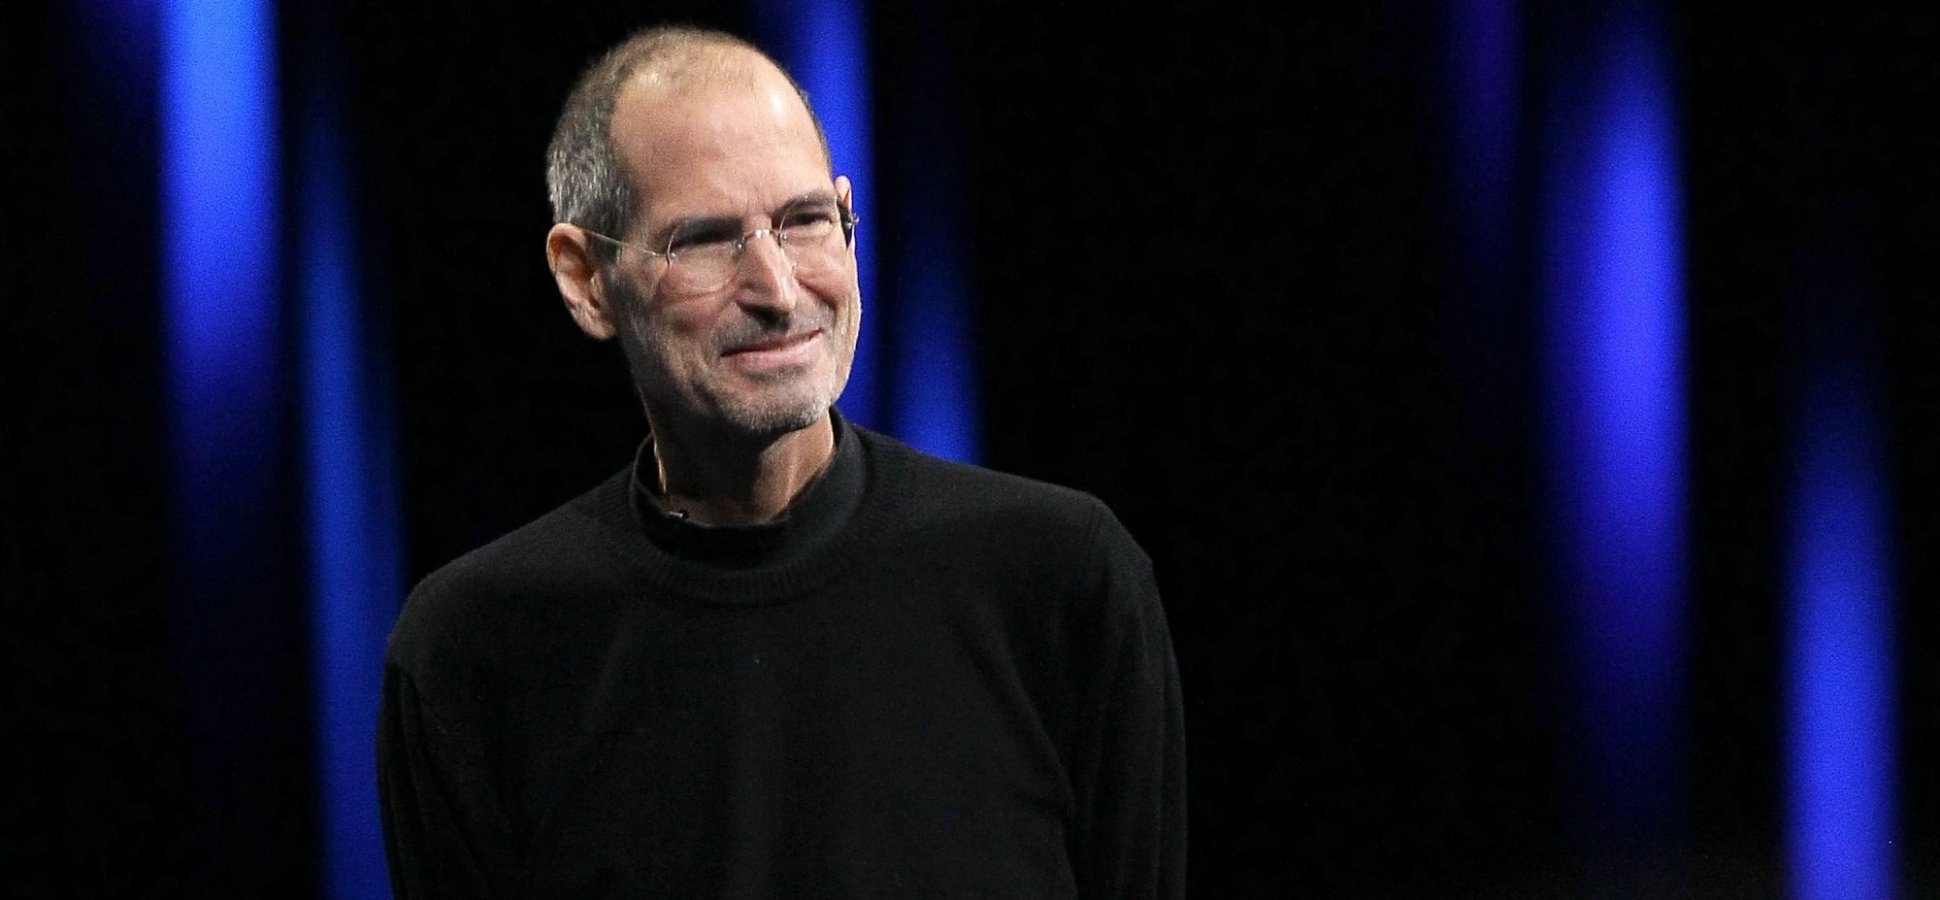 This 1 Detail Explains Why Steve Jobs Was the Best at Public Presentations (and You Can Totally Use It Too)